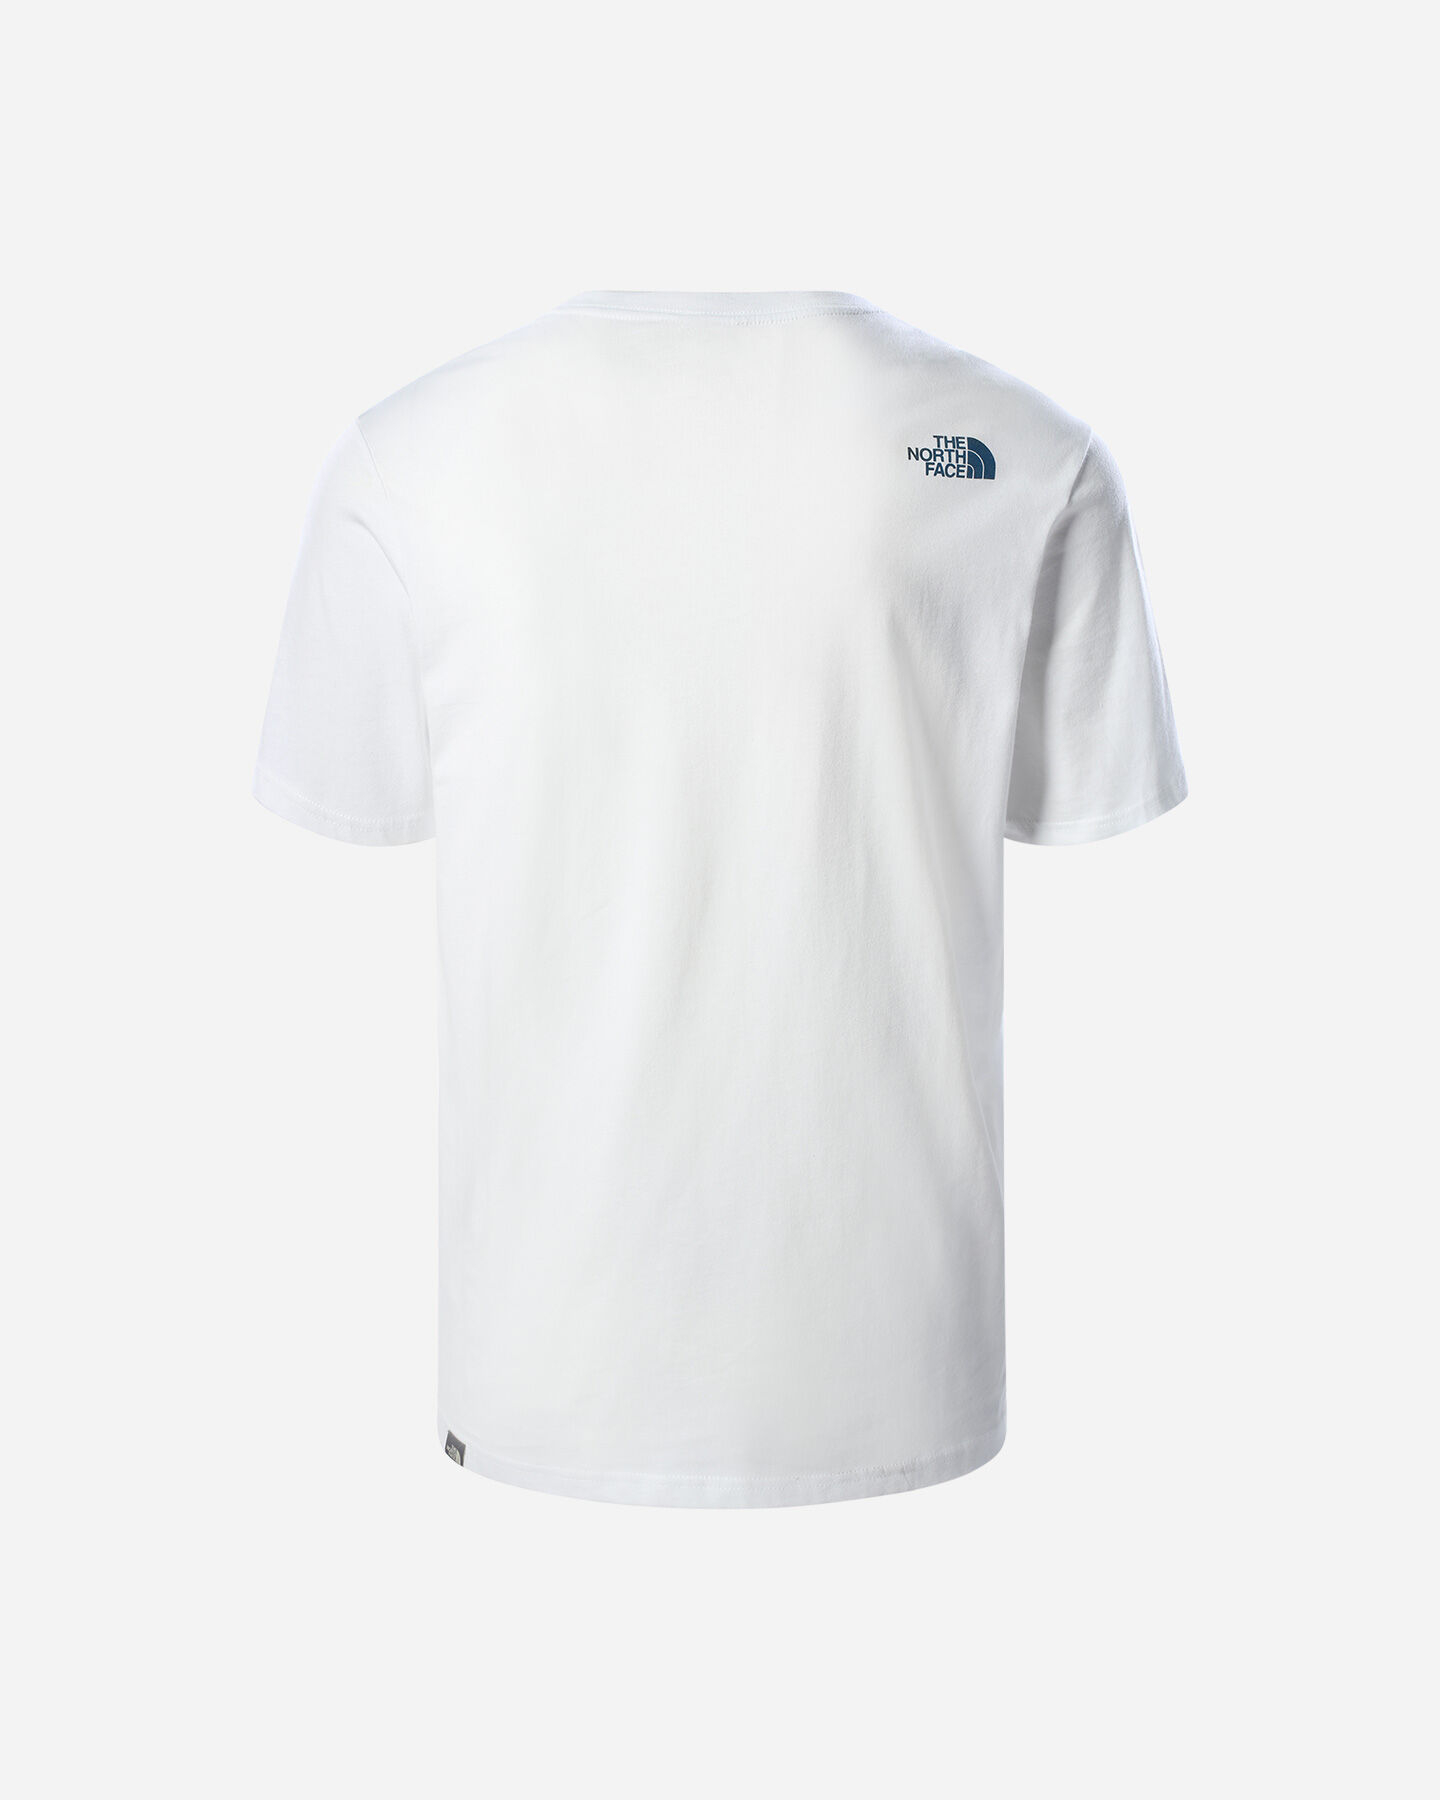 T-Shirt THE NORTH FACE CAMPAY BIG LOGO M S5296497 scatto 1